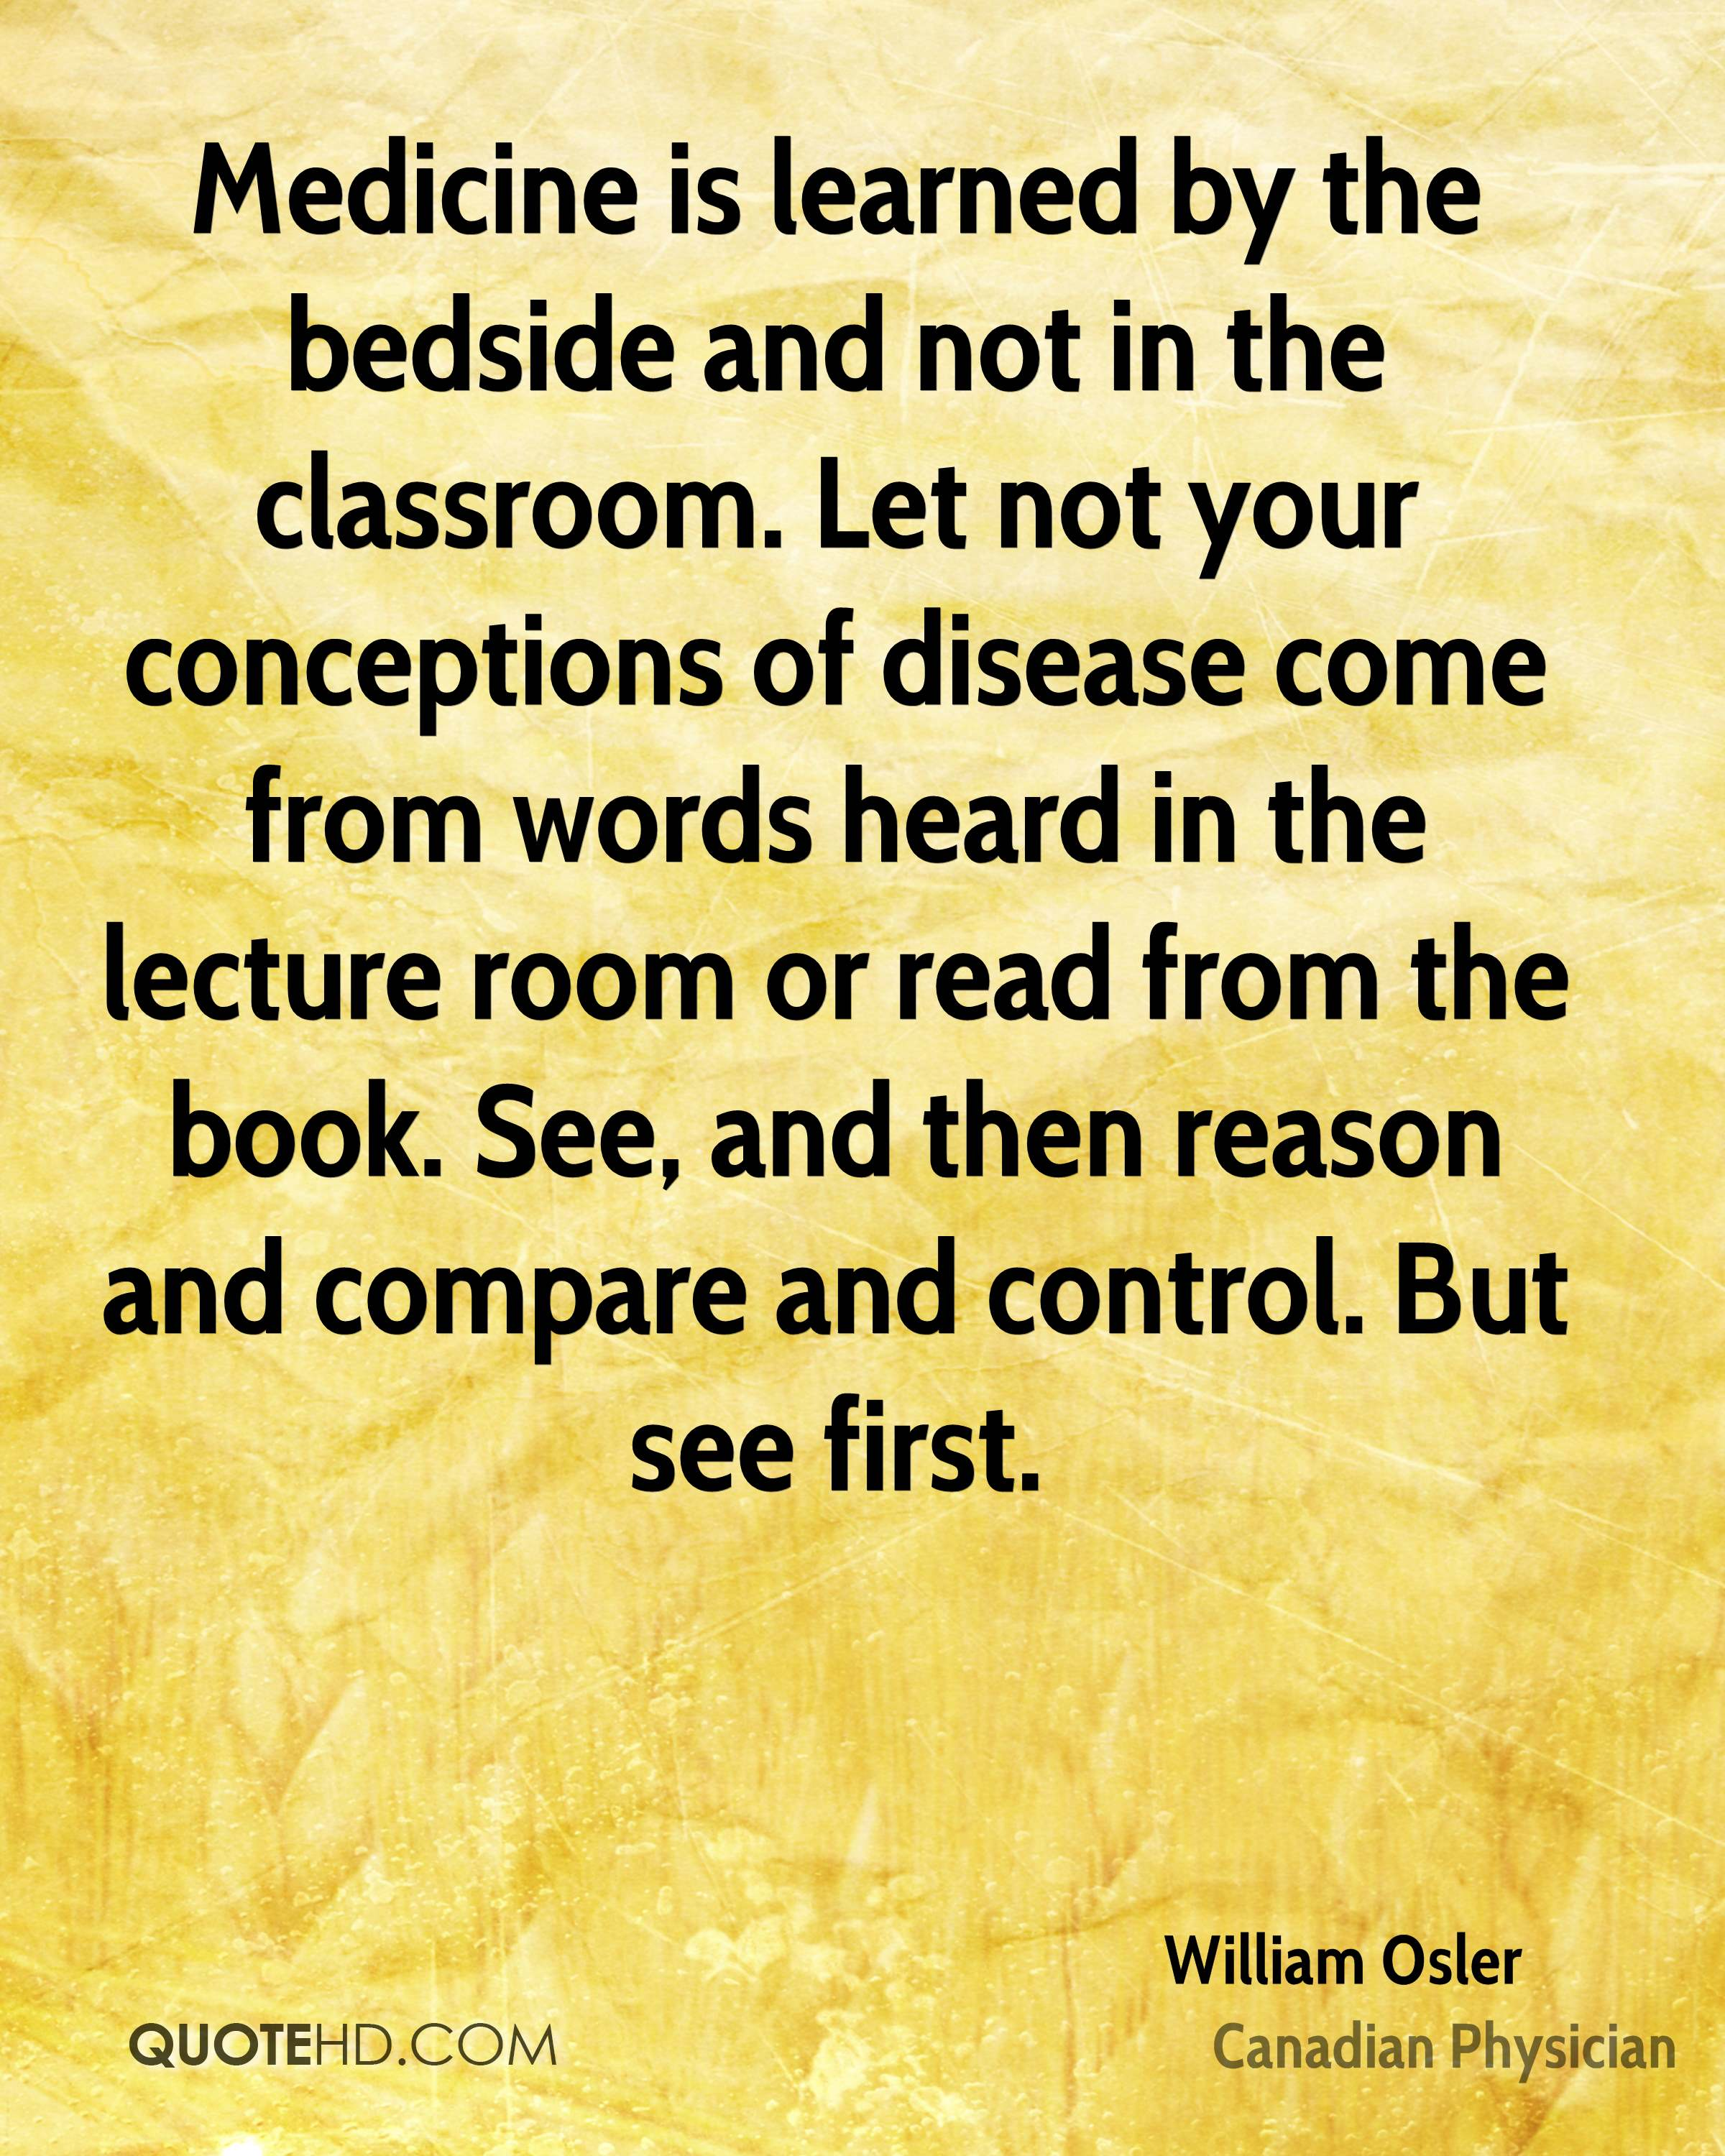 Medicine is learned by the bedside and not in the classroom. Let not your conceptions of disease come from words heard in the lecture room or read from the book. See, and then reason and compare and control. But see first.